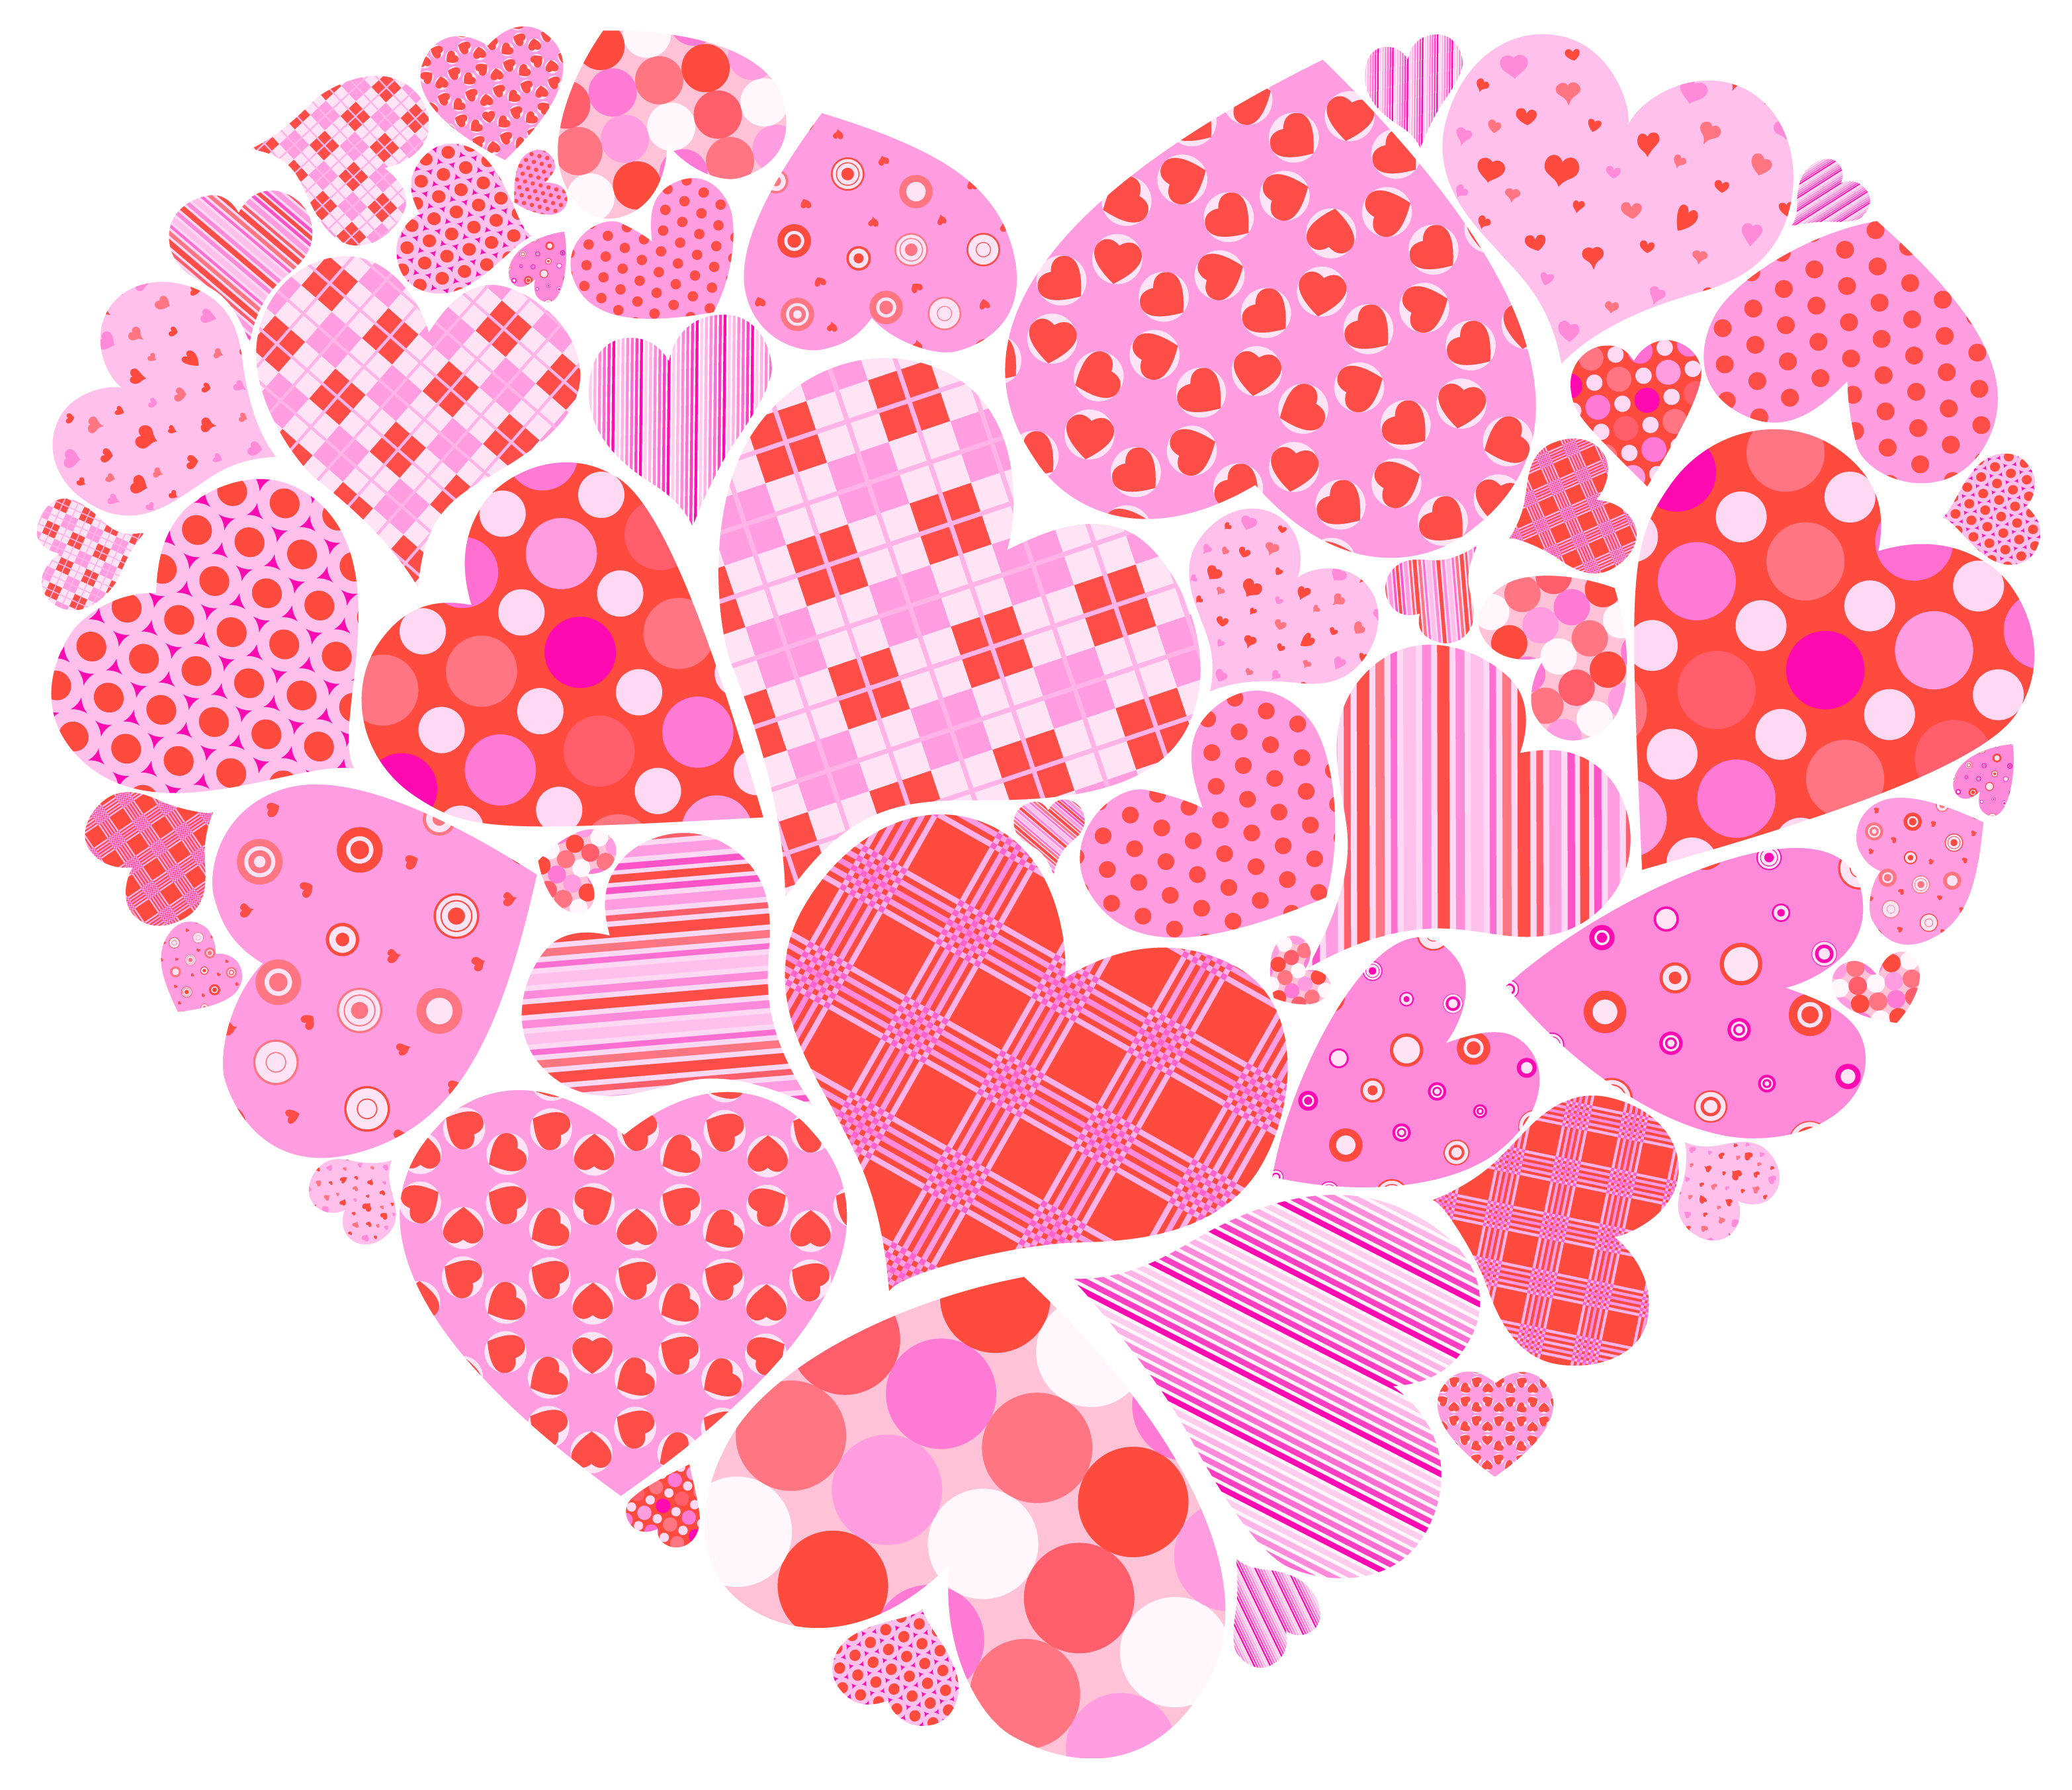 Hearts clipart ladybug. Valentines day heart of